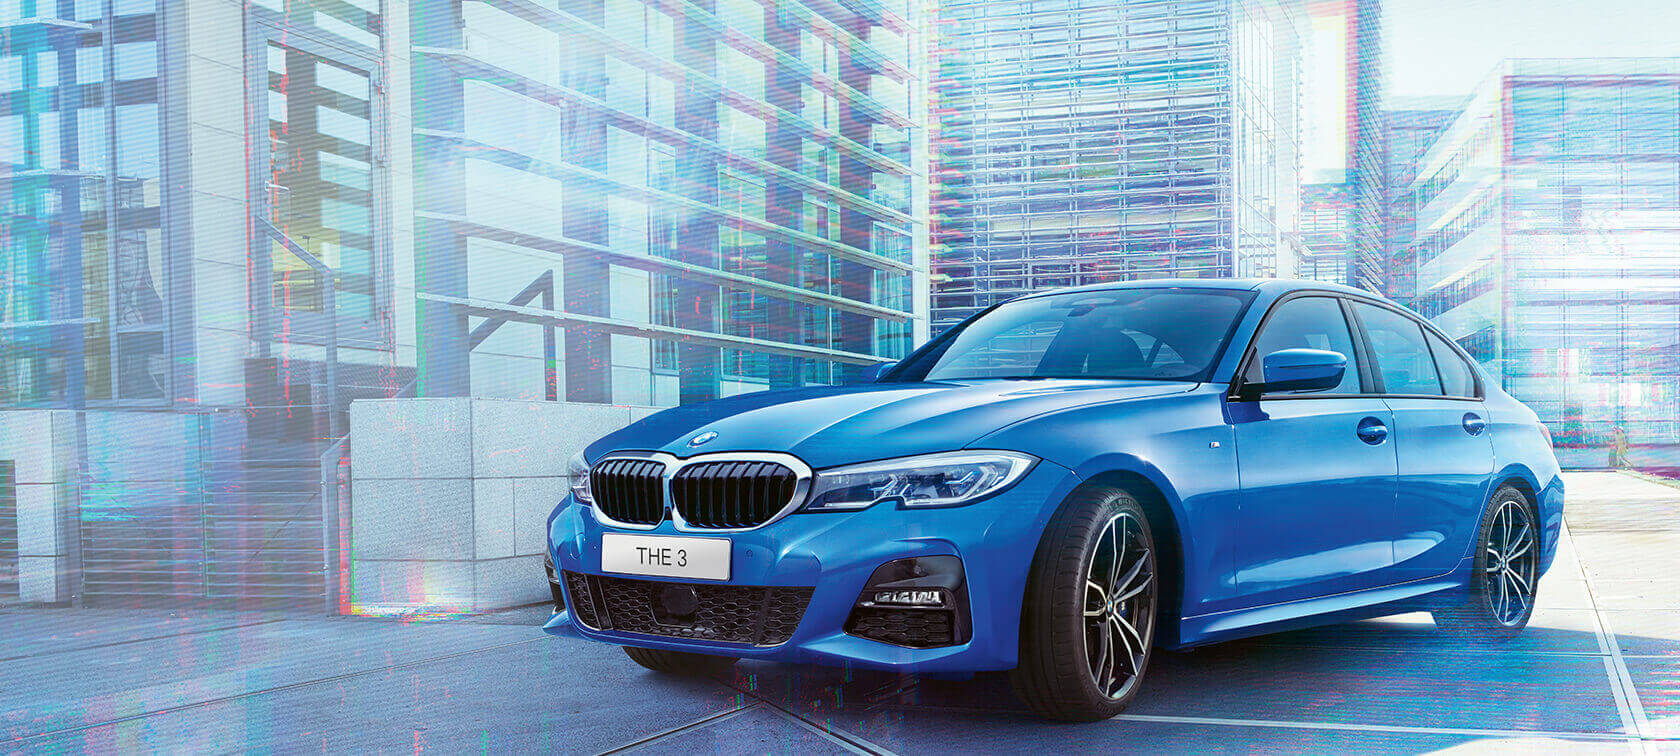 Top 3 Reasons Why Hiring An BMW Mechanic Is The Best Decision